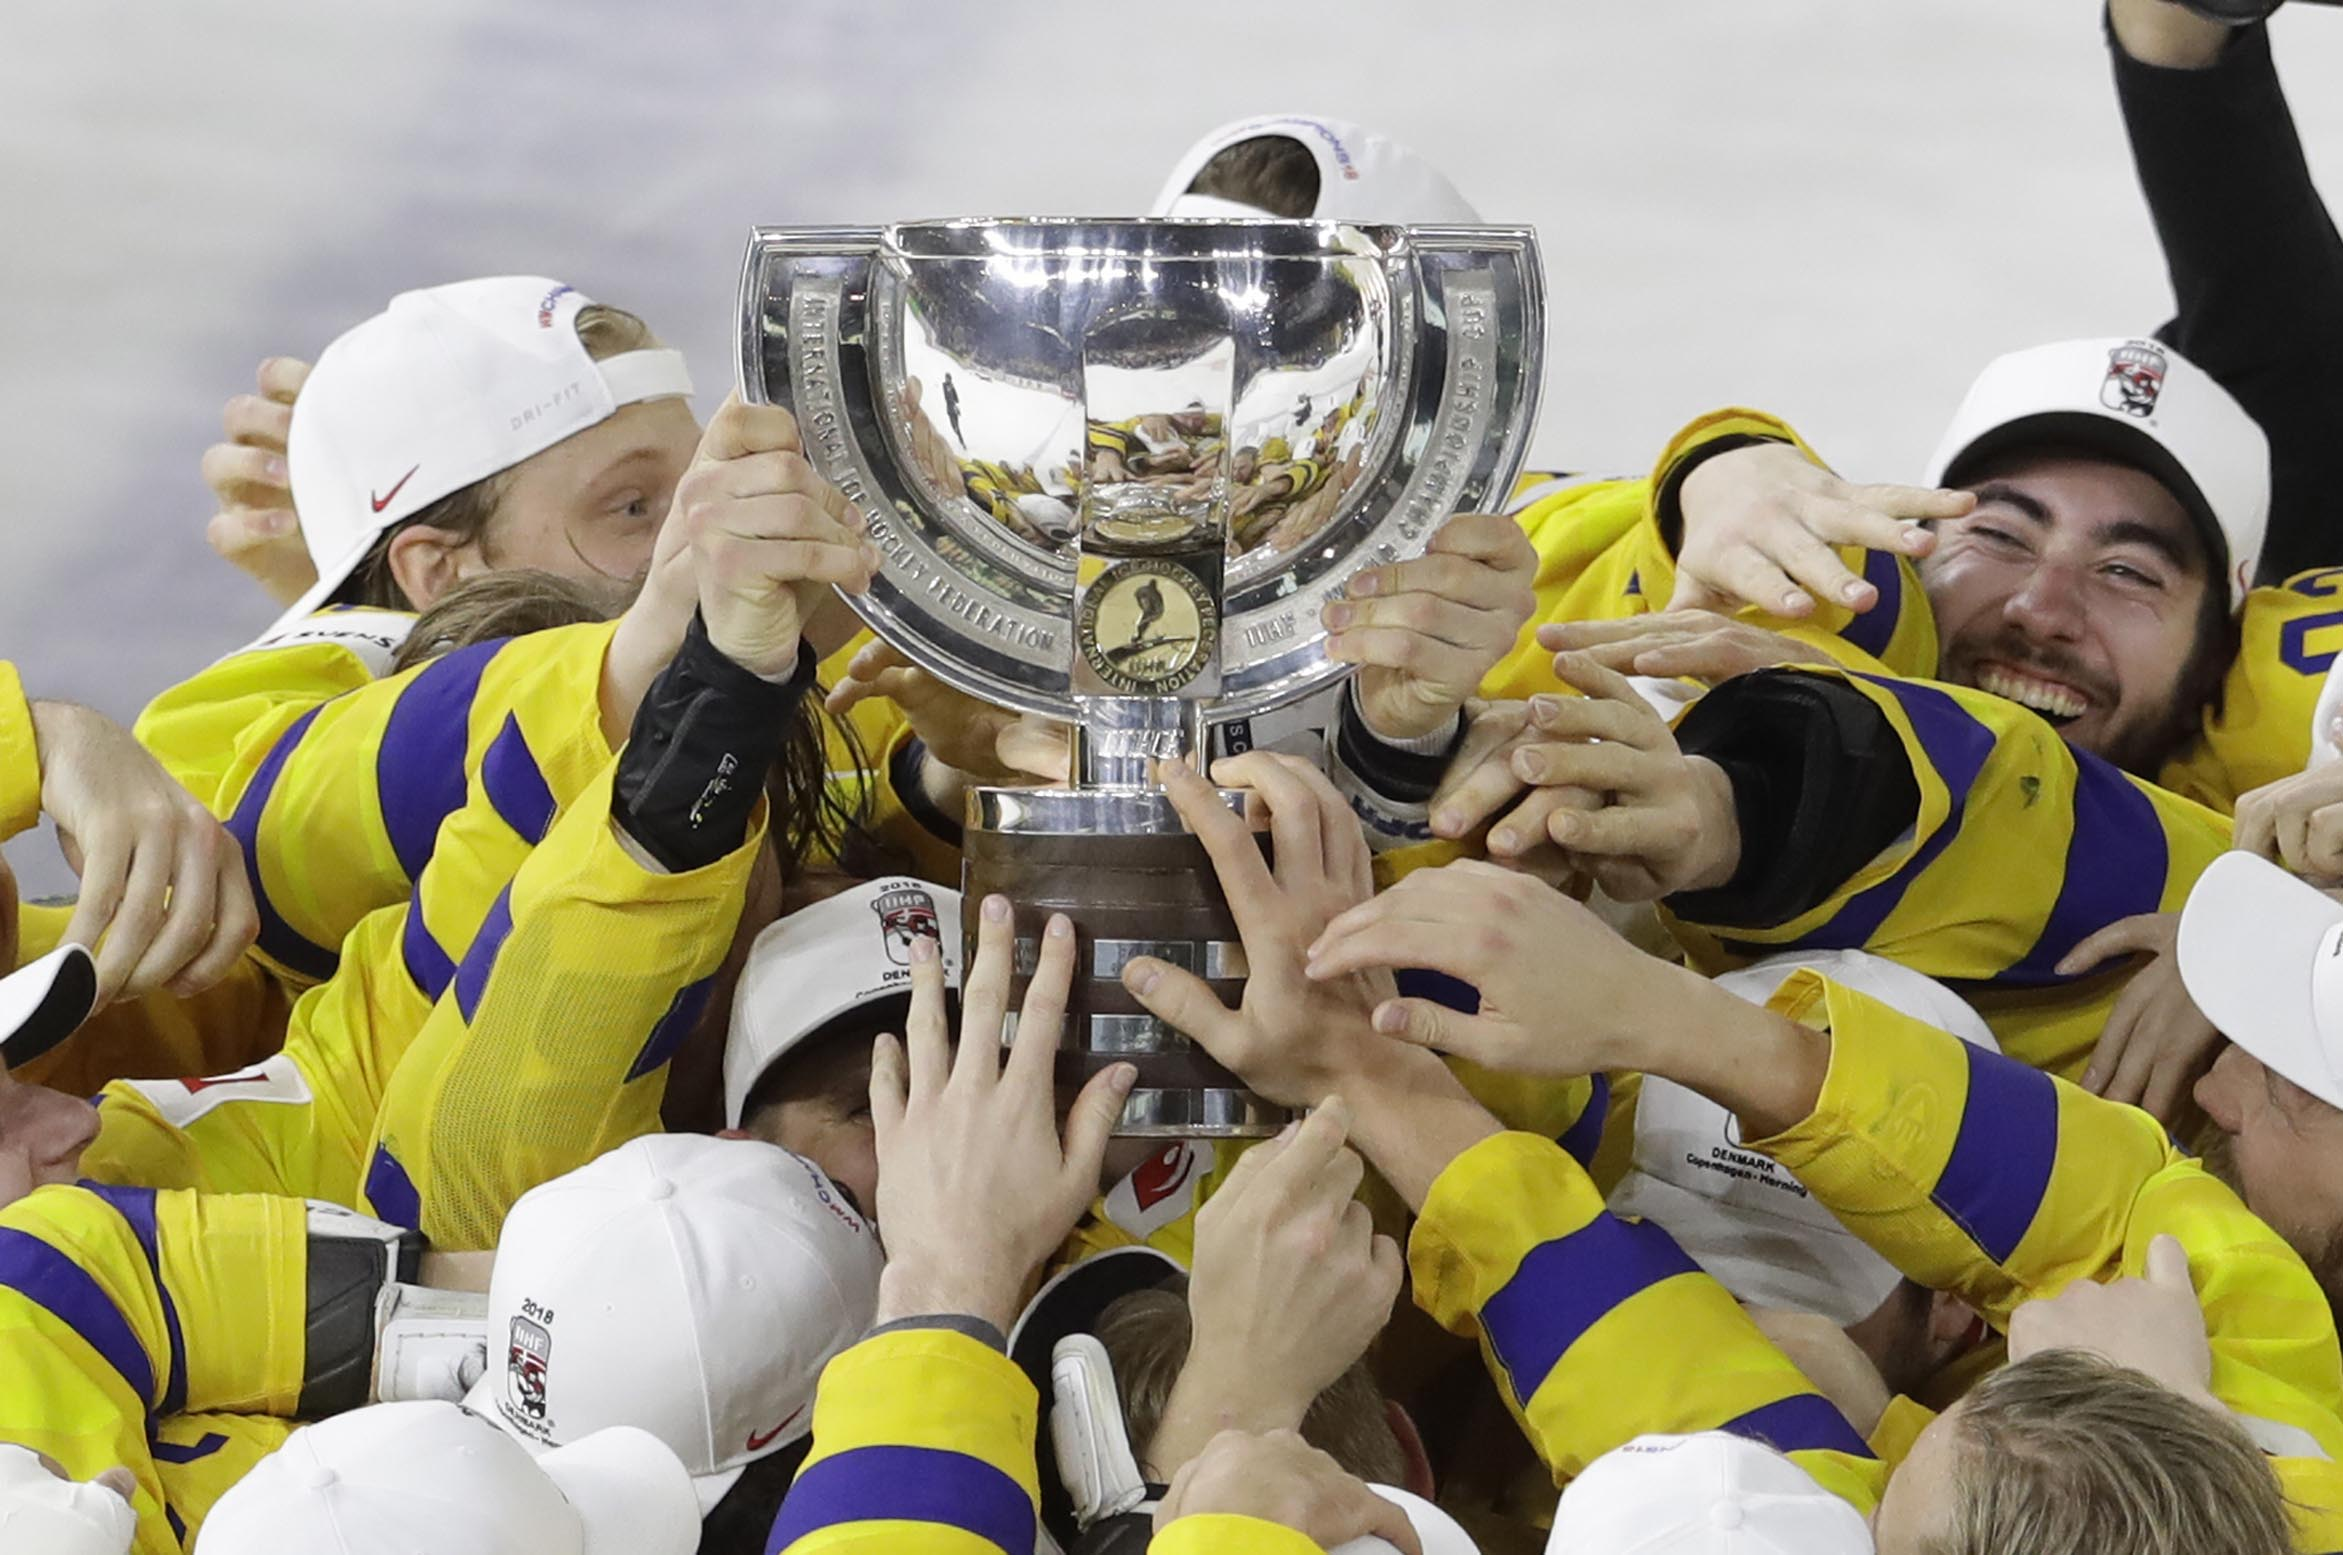 Sweden's players celebrate with the trophy their victory over Switzerland in the Ice Hockey World Championships final match between Sweden and Switzerland at the Royal arena in Copenhagen, Denmark on Sunday.